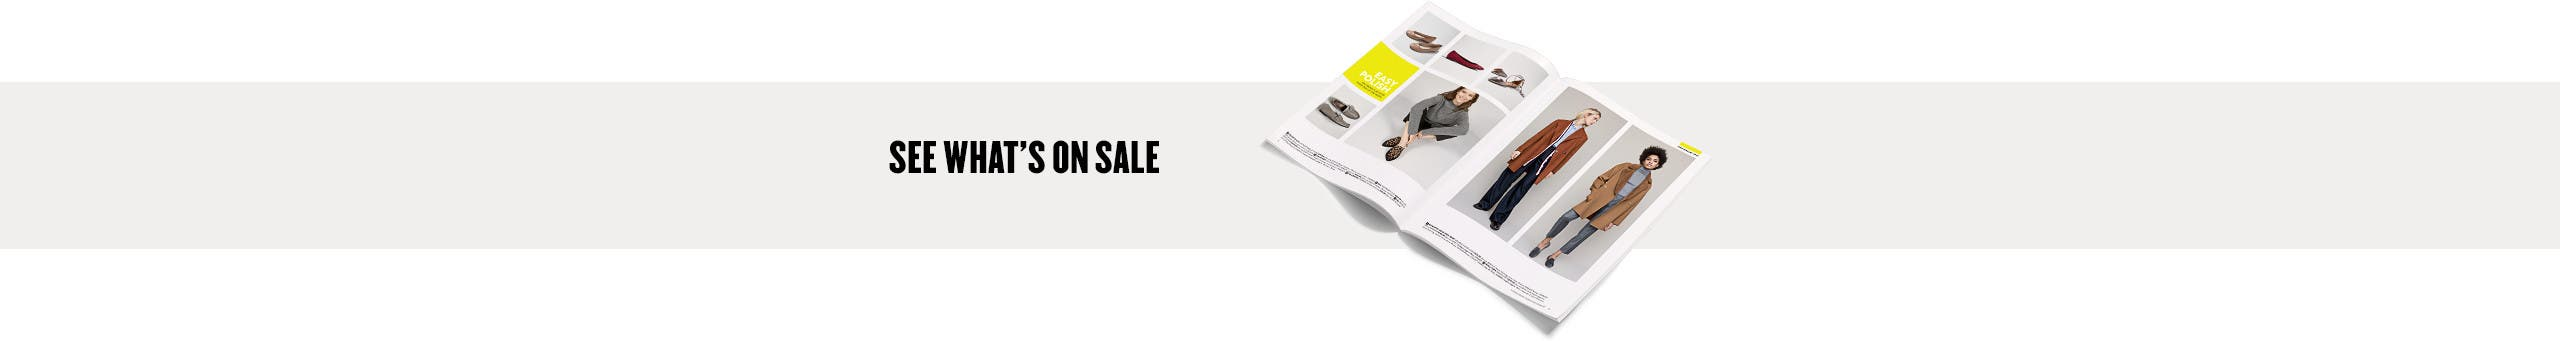 Nordstrom Anniversary Sale catalogue for men, women and kids.